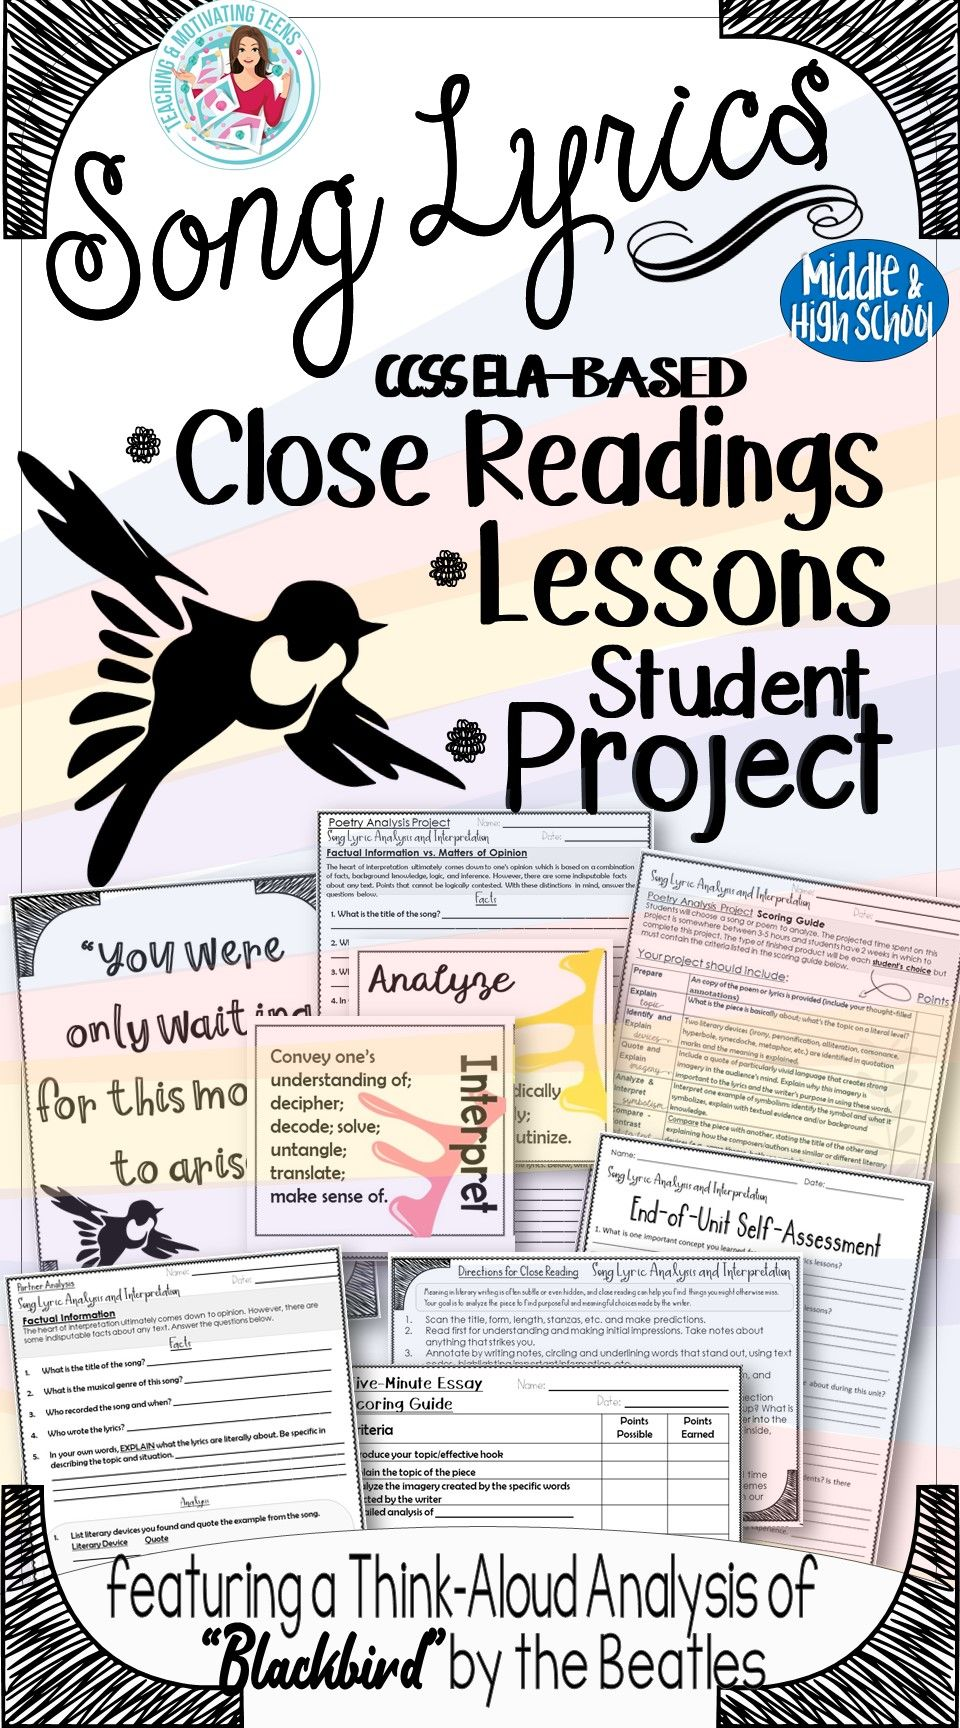 Your students will love the process of poetry analysis with these engaging and informative lessons based on song lyrics!